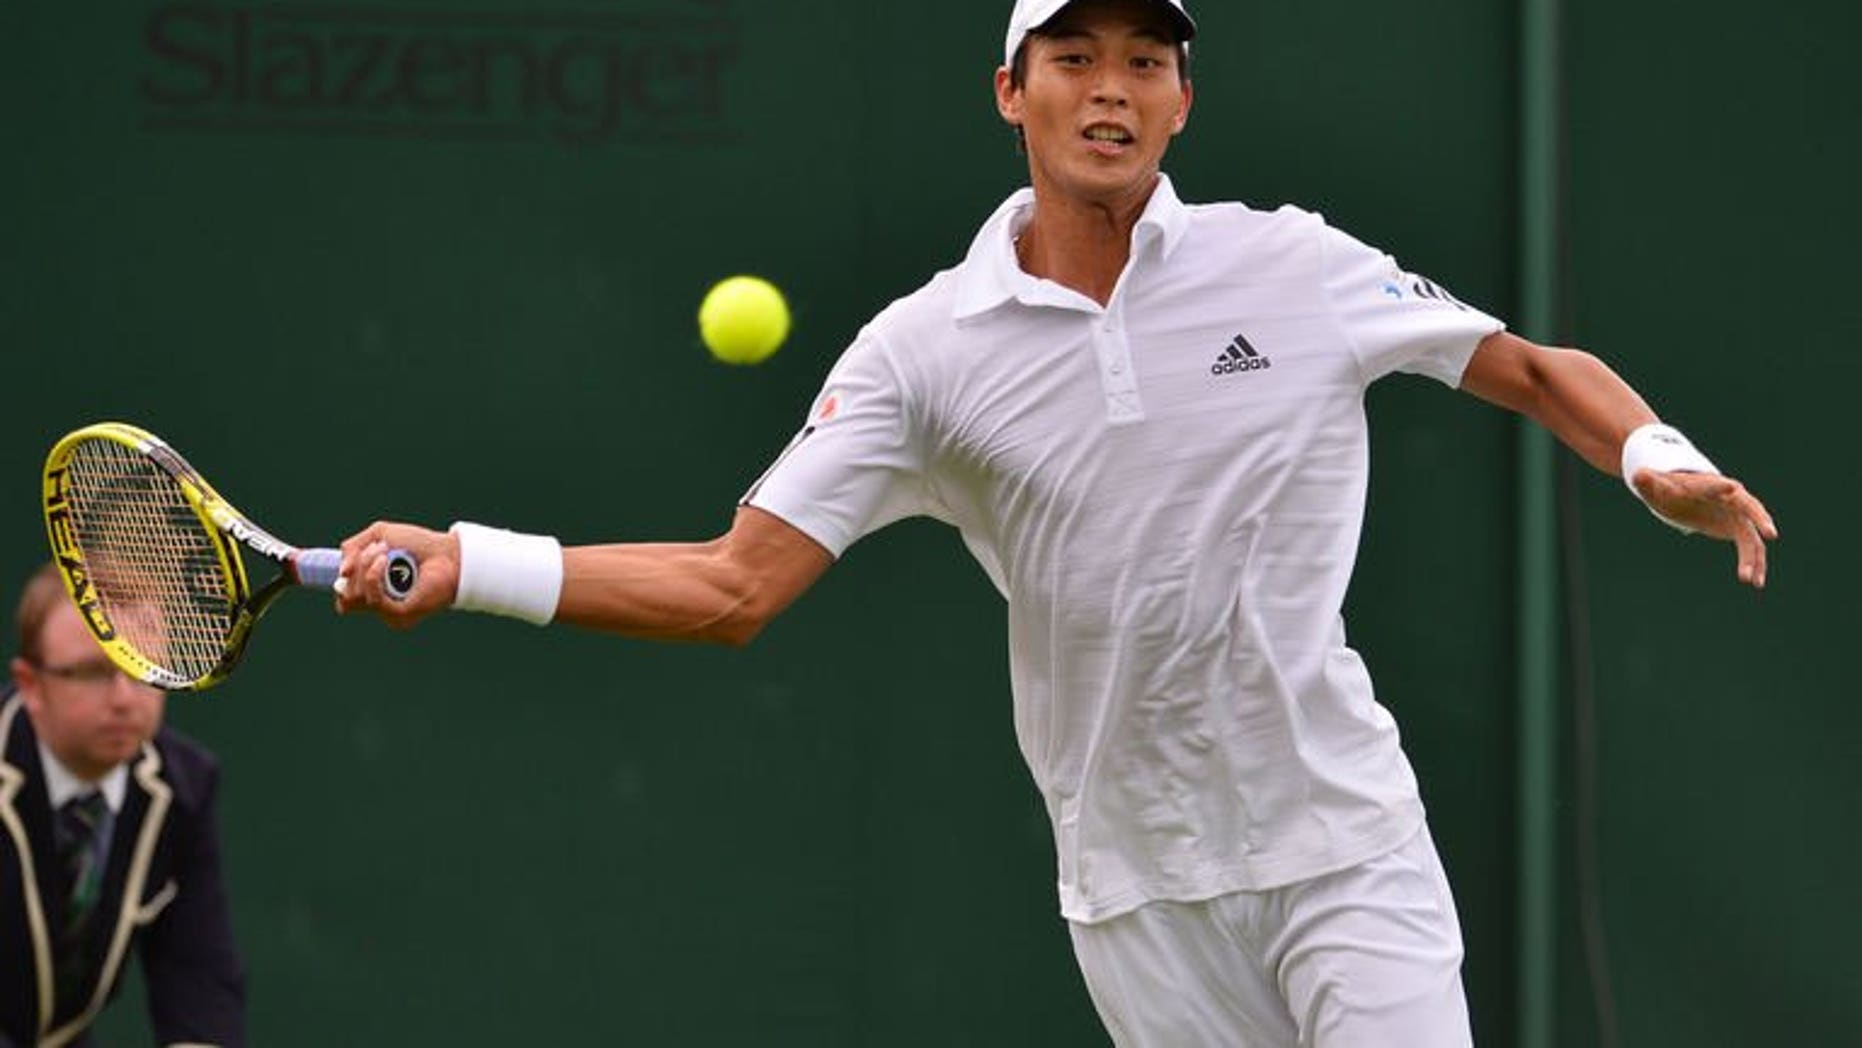 Taiwan's Lu Yen-Hsun hits a return on day one of the 2013 Wimbledon Championships at the All England Club in London, on June 24, 2013. Lu hopes to draw inspiration from his 2008 Olympics victory over Andy Murray when he clashes with the world number two for a place in the Wimbledon third round on Wednesday.